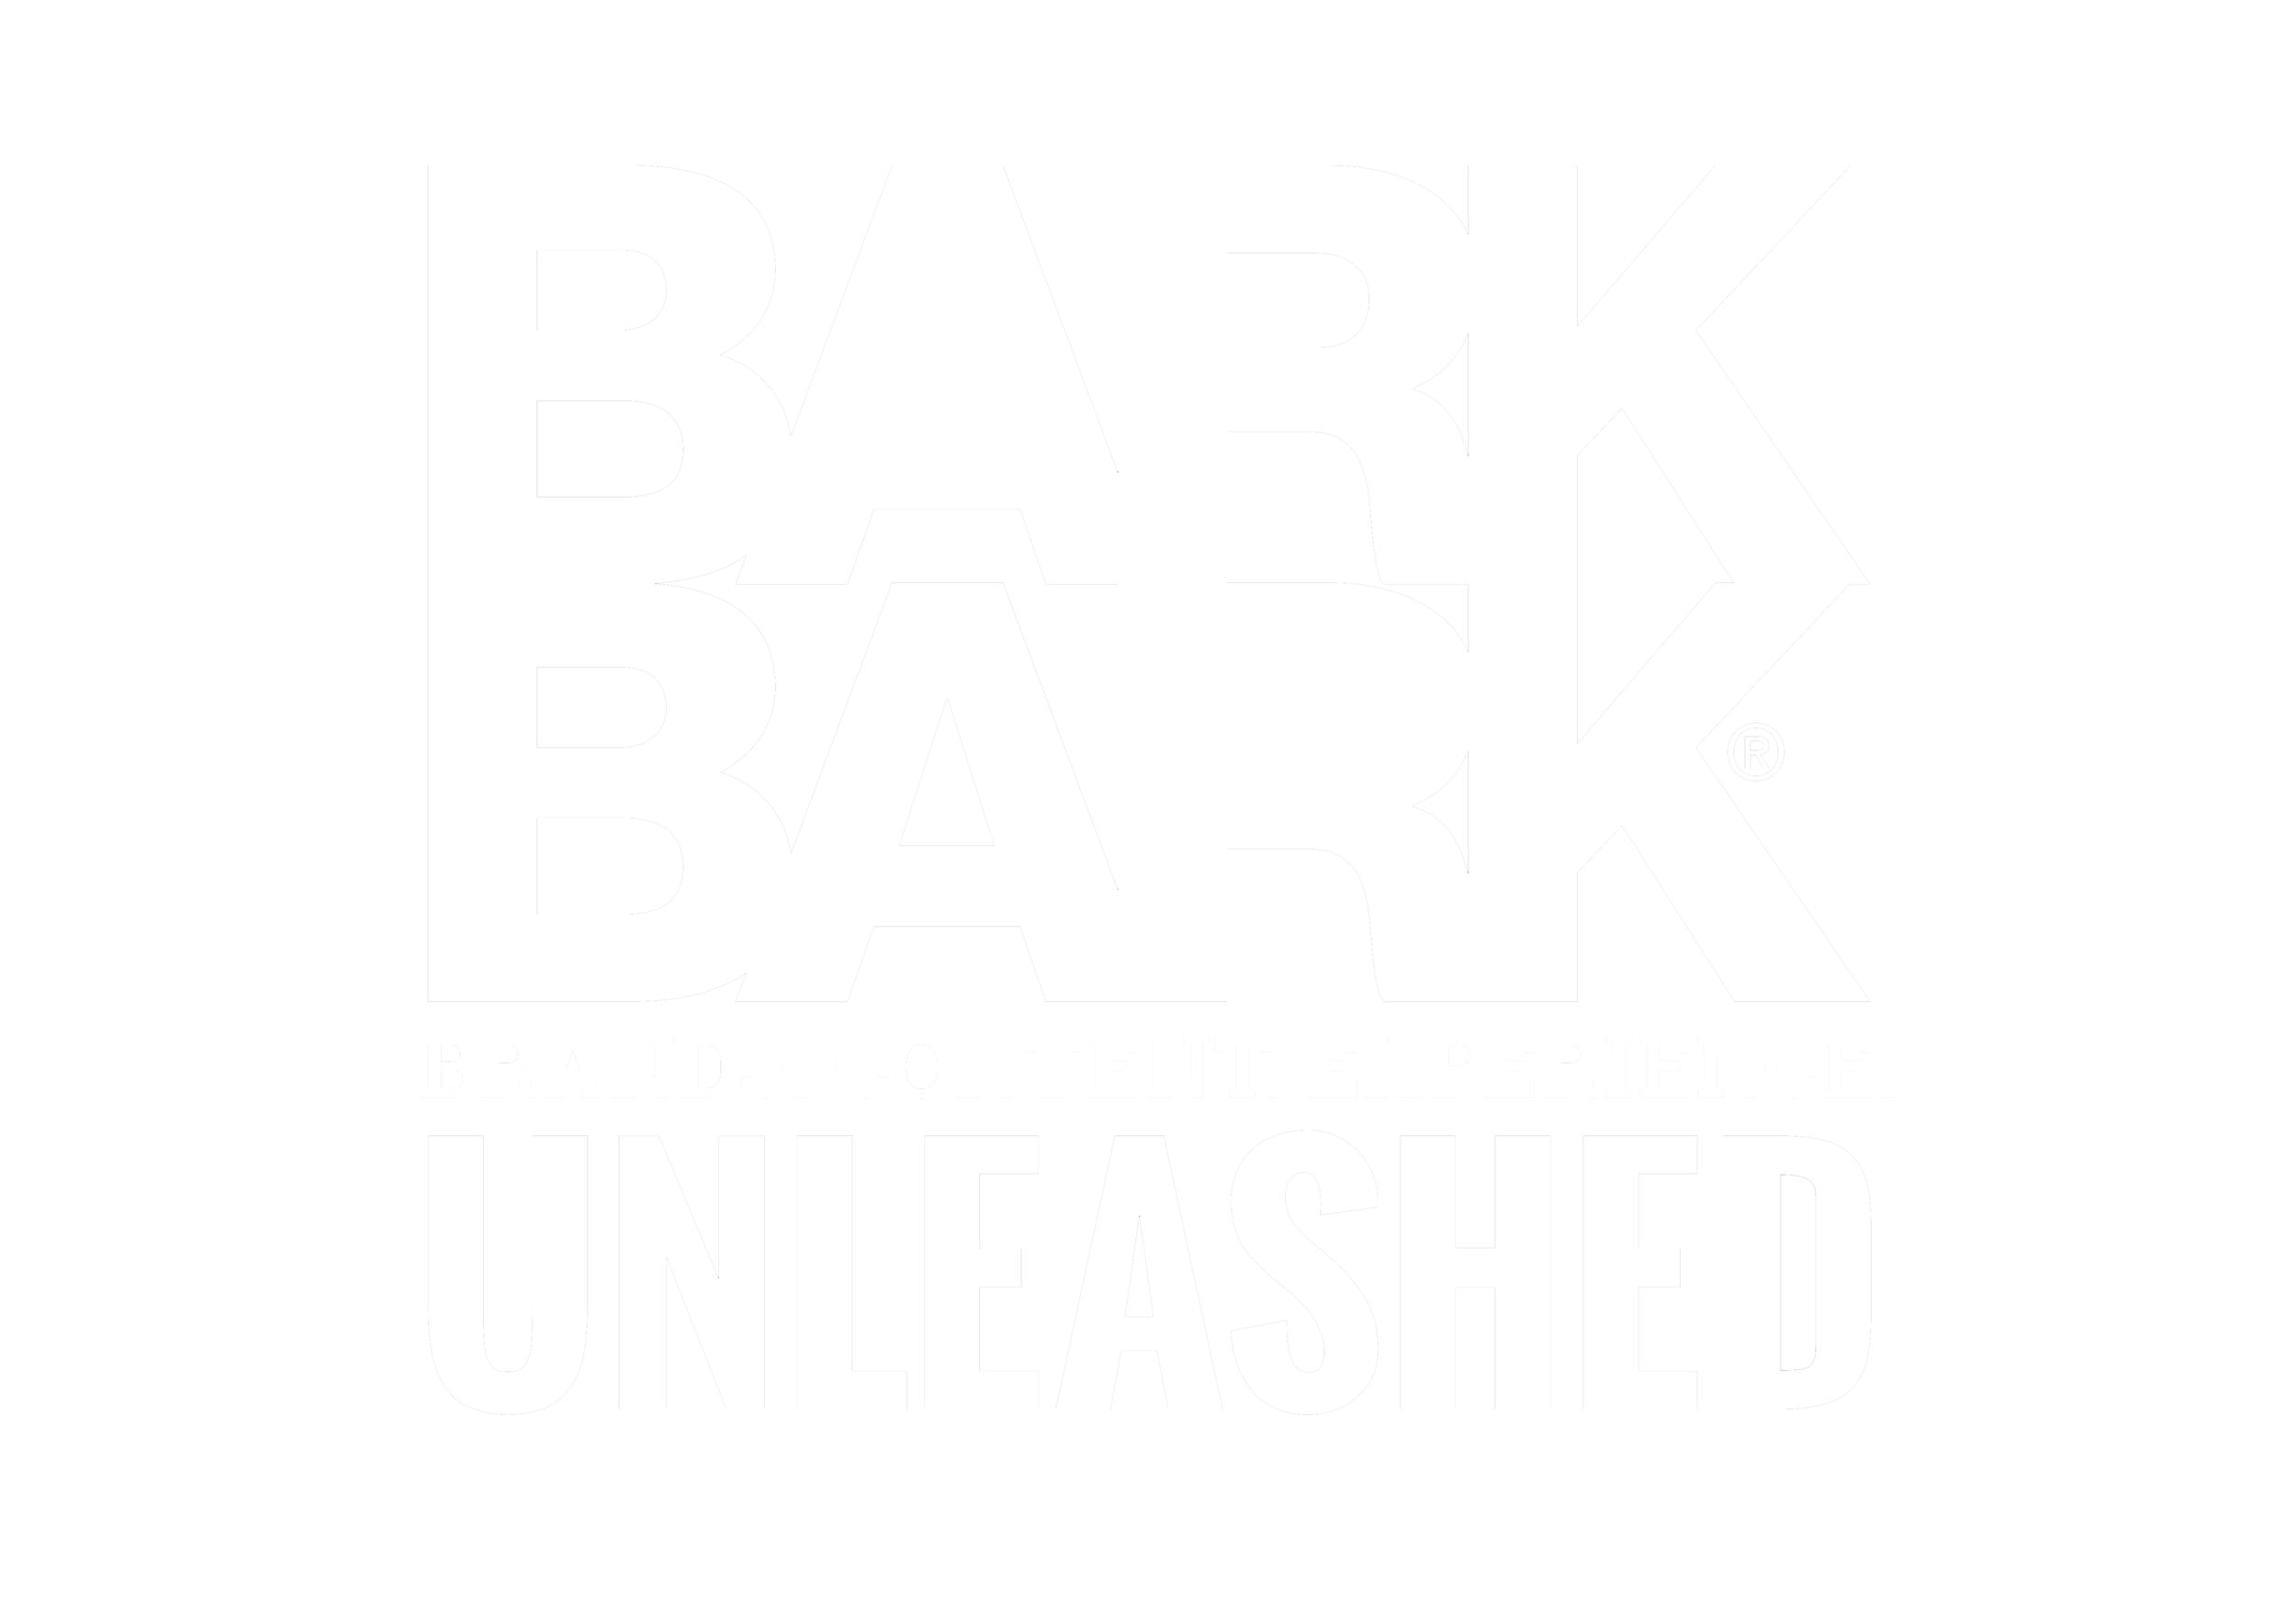 BarkBark_Unleashed_WHITE_ALL.png